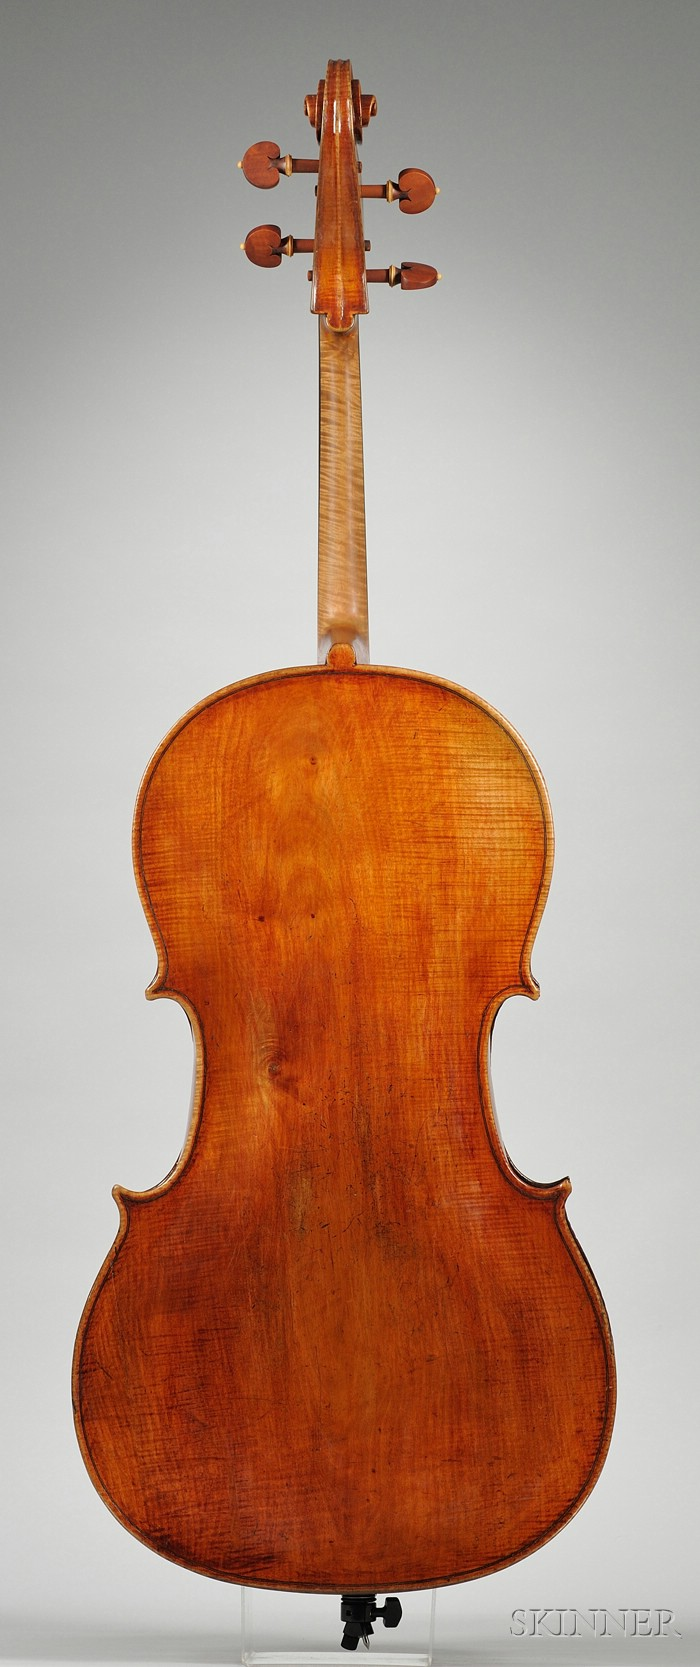 Northern Italian Violoncello, Storioni School, c. 1800